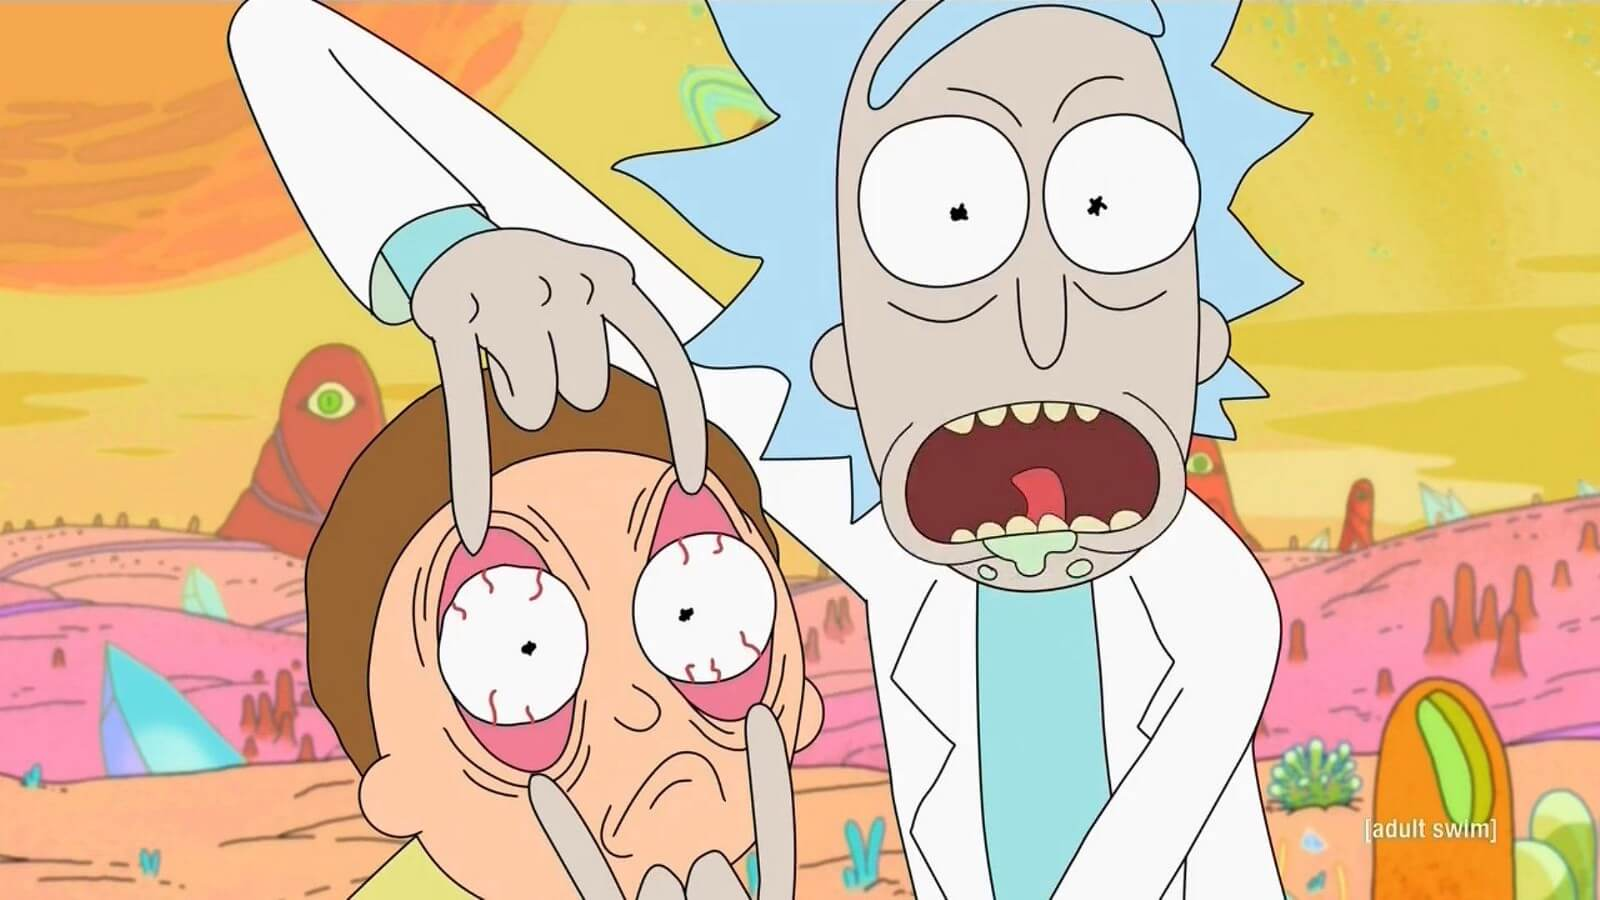 1 JRahv0lusXhrmY5tzESwiQ - Rick and Morty acaba de ter 70 episódios encomendados pelo Adult Swim